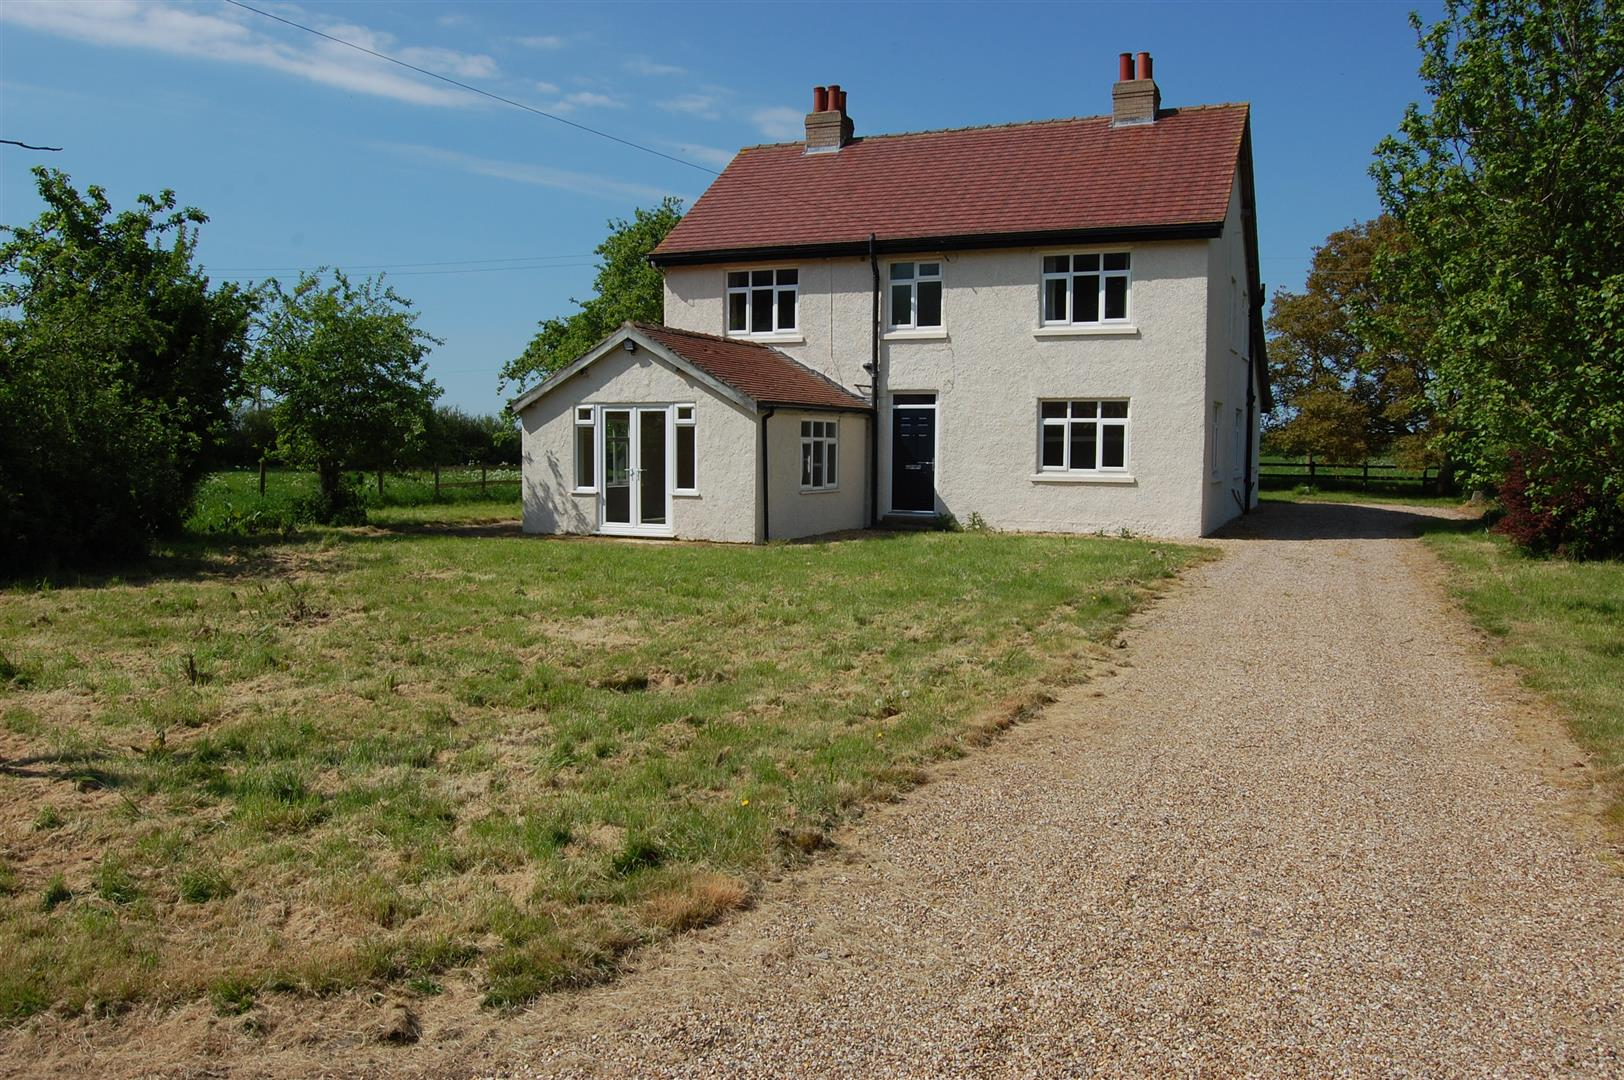 4 bedroom property in Sleaford